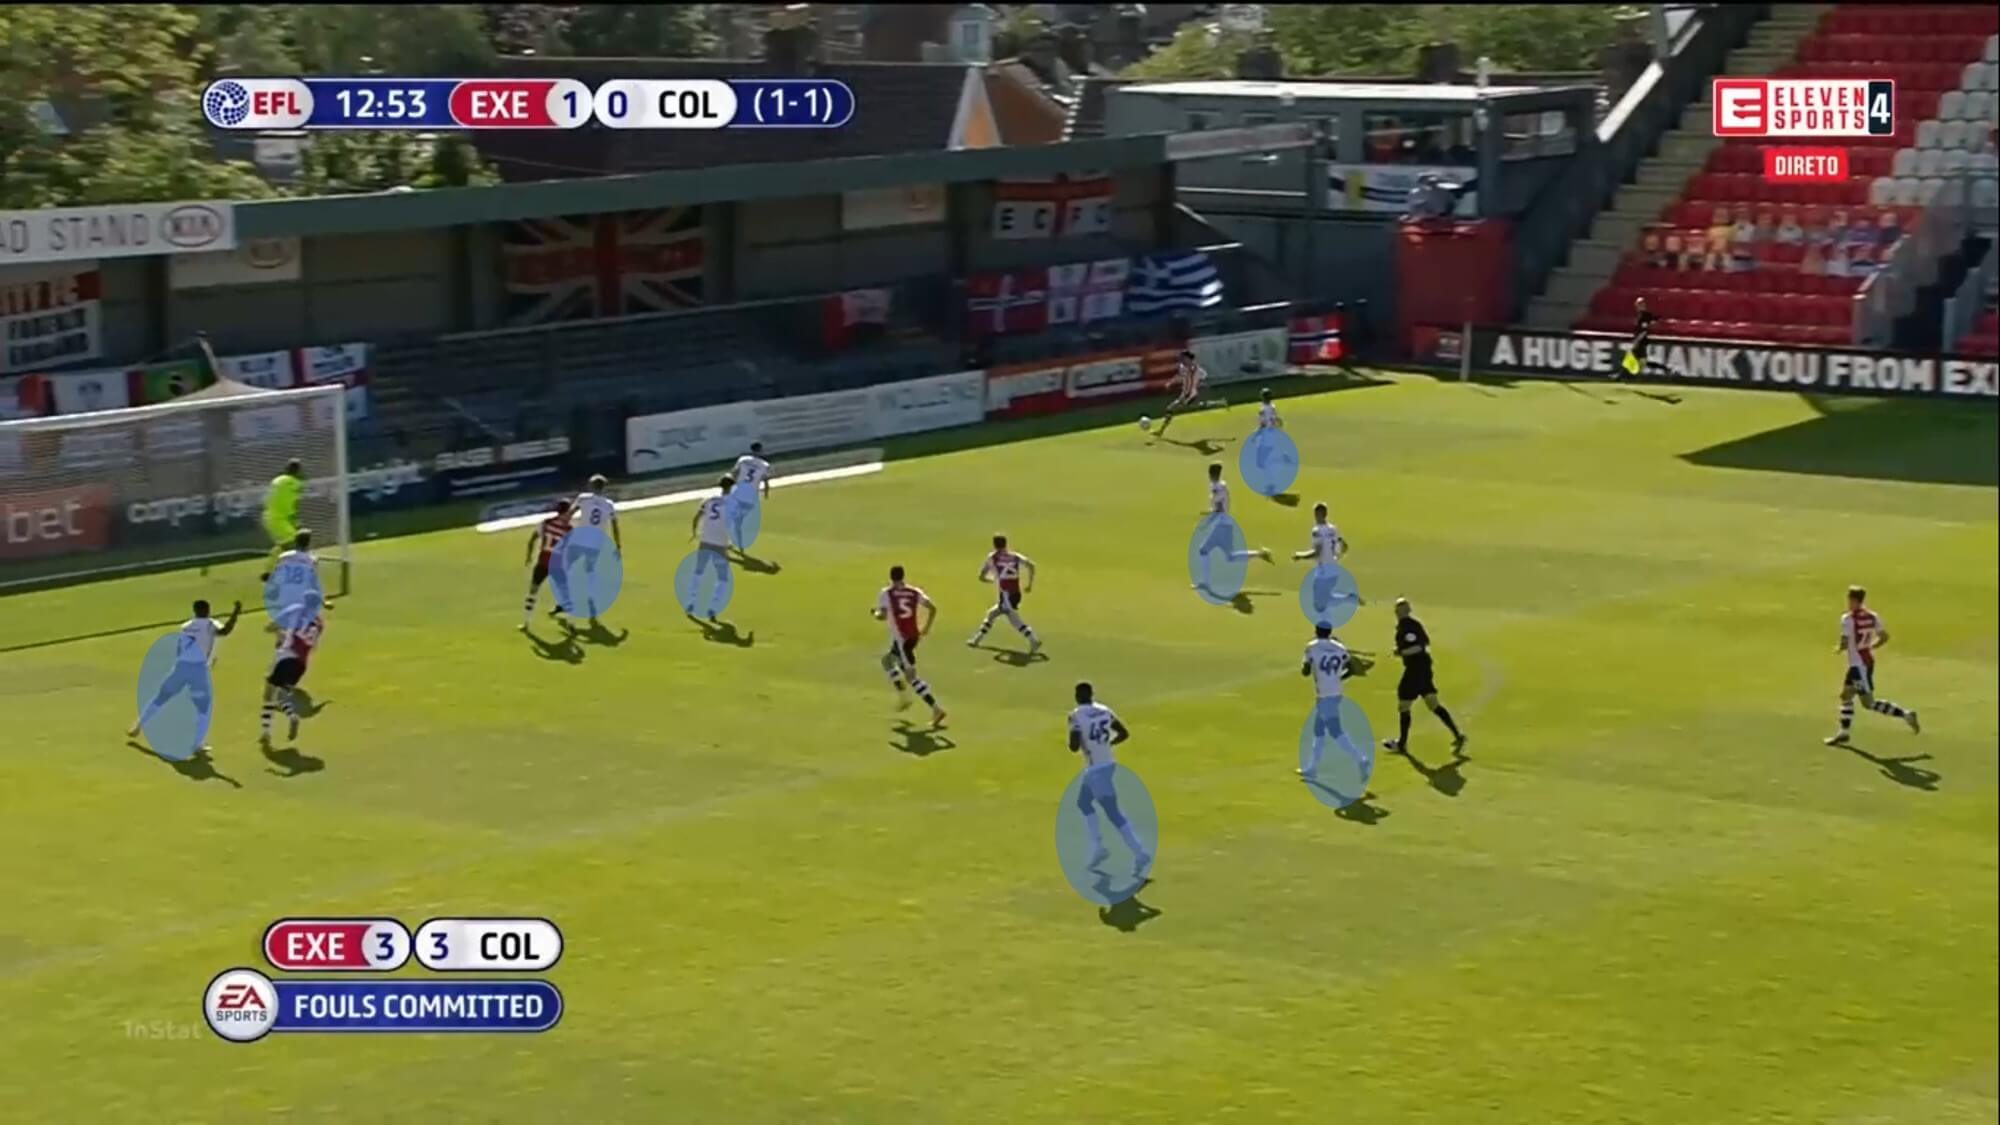 EFL League Two playoff semi-final second leg 2019/20: Exeter City vs Colchester United - tactical analysis - tactics